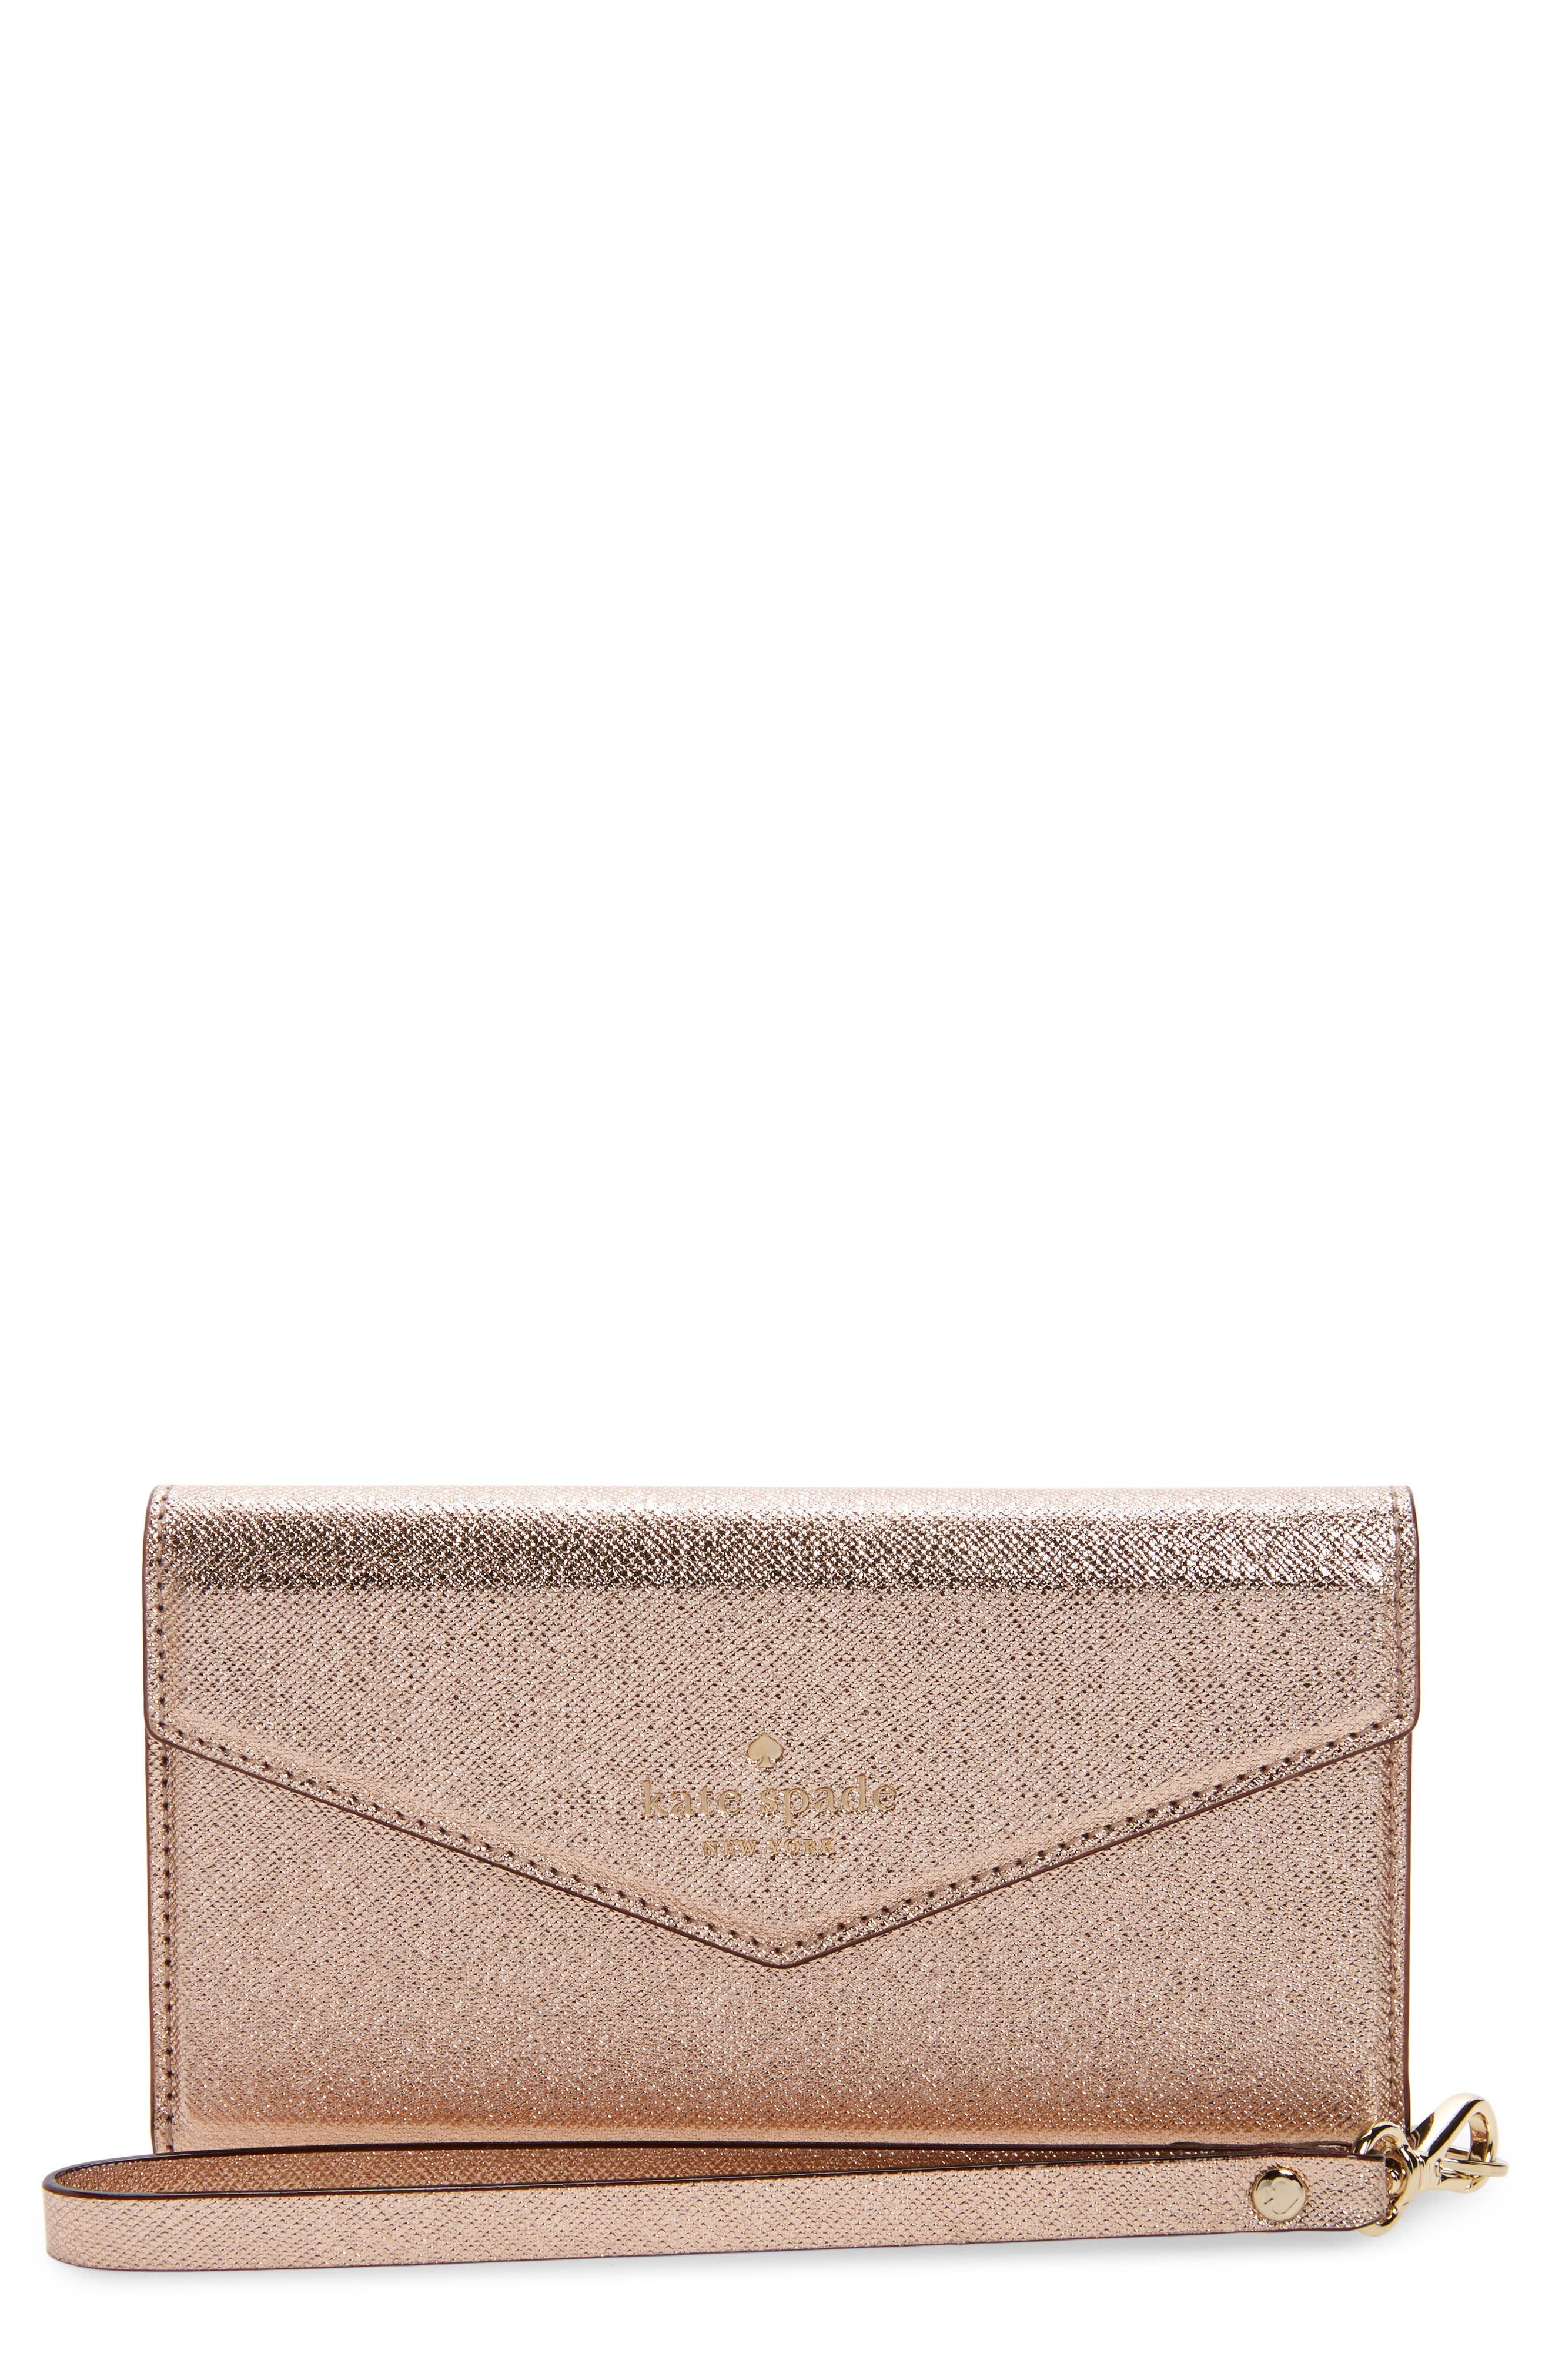 iPhone 7/8 & 7/8 Plus leather wristlet,                         Main,                         color, ROSE GOLD